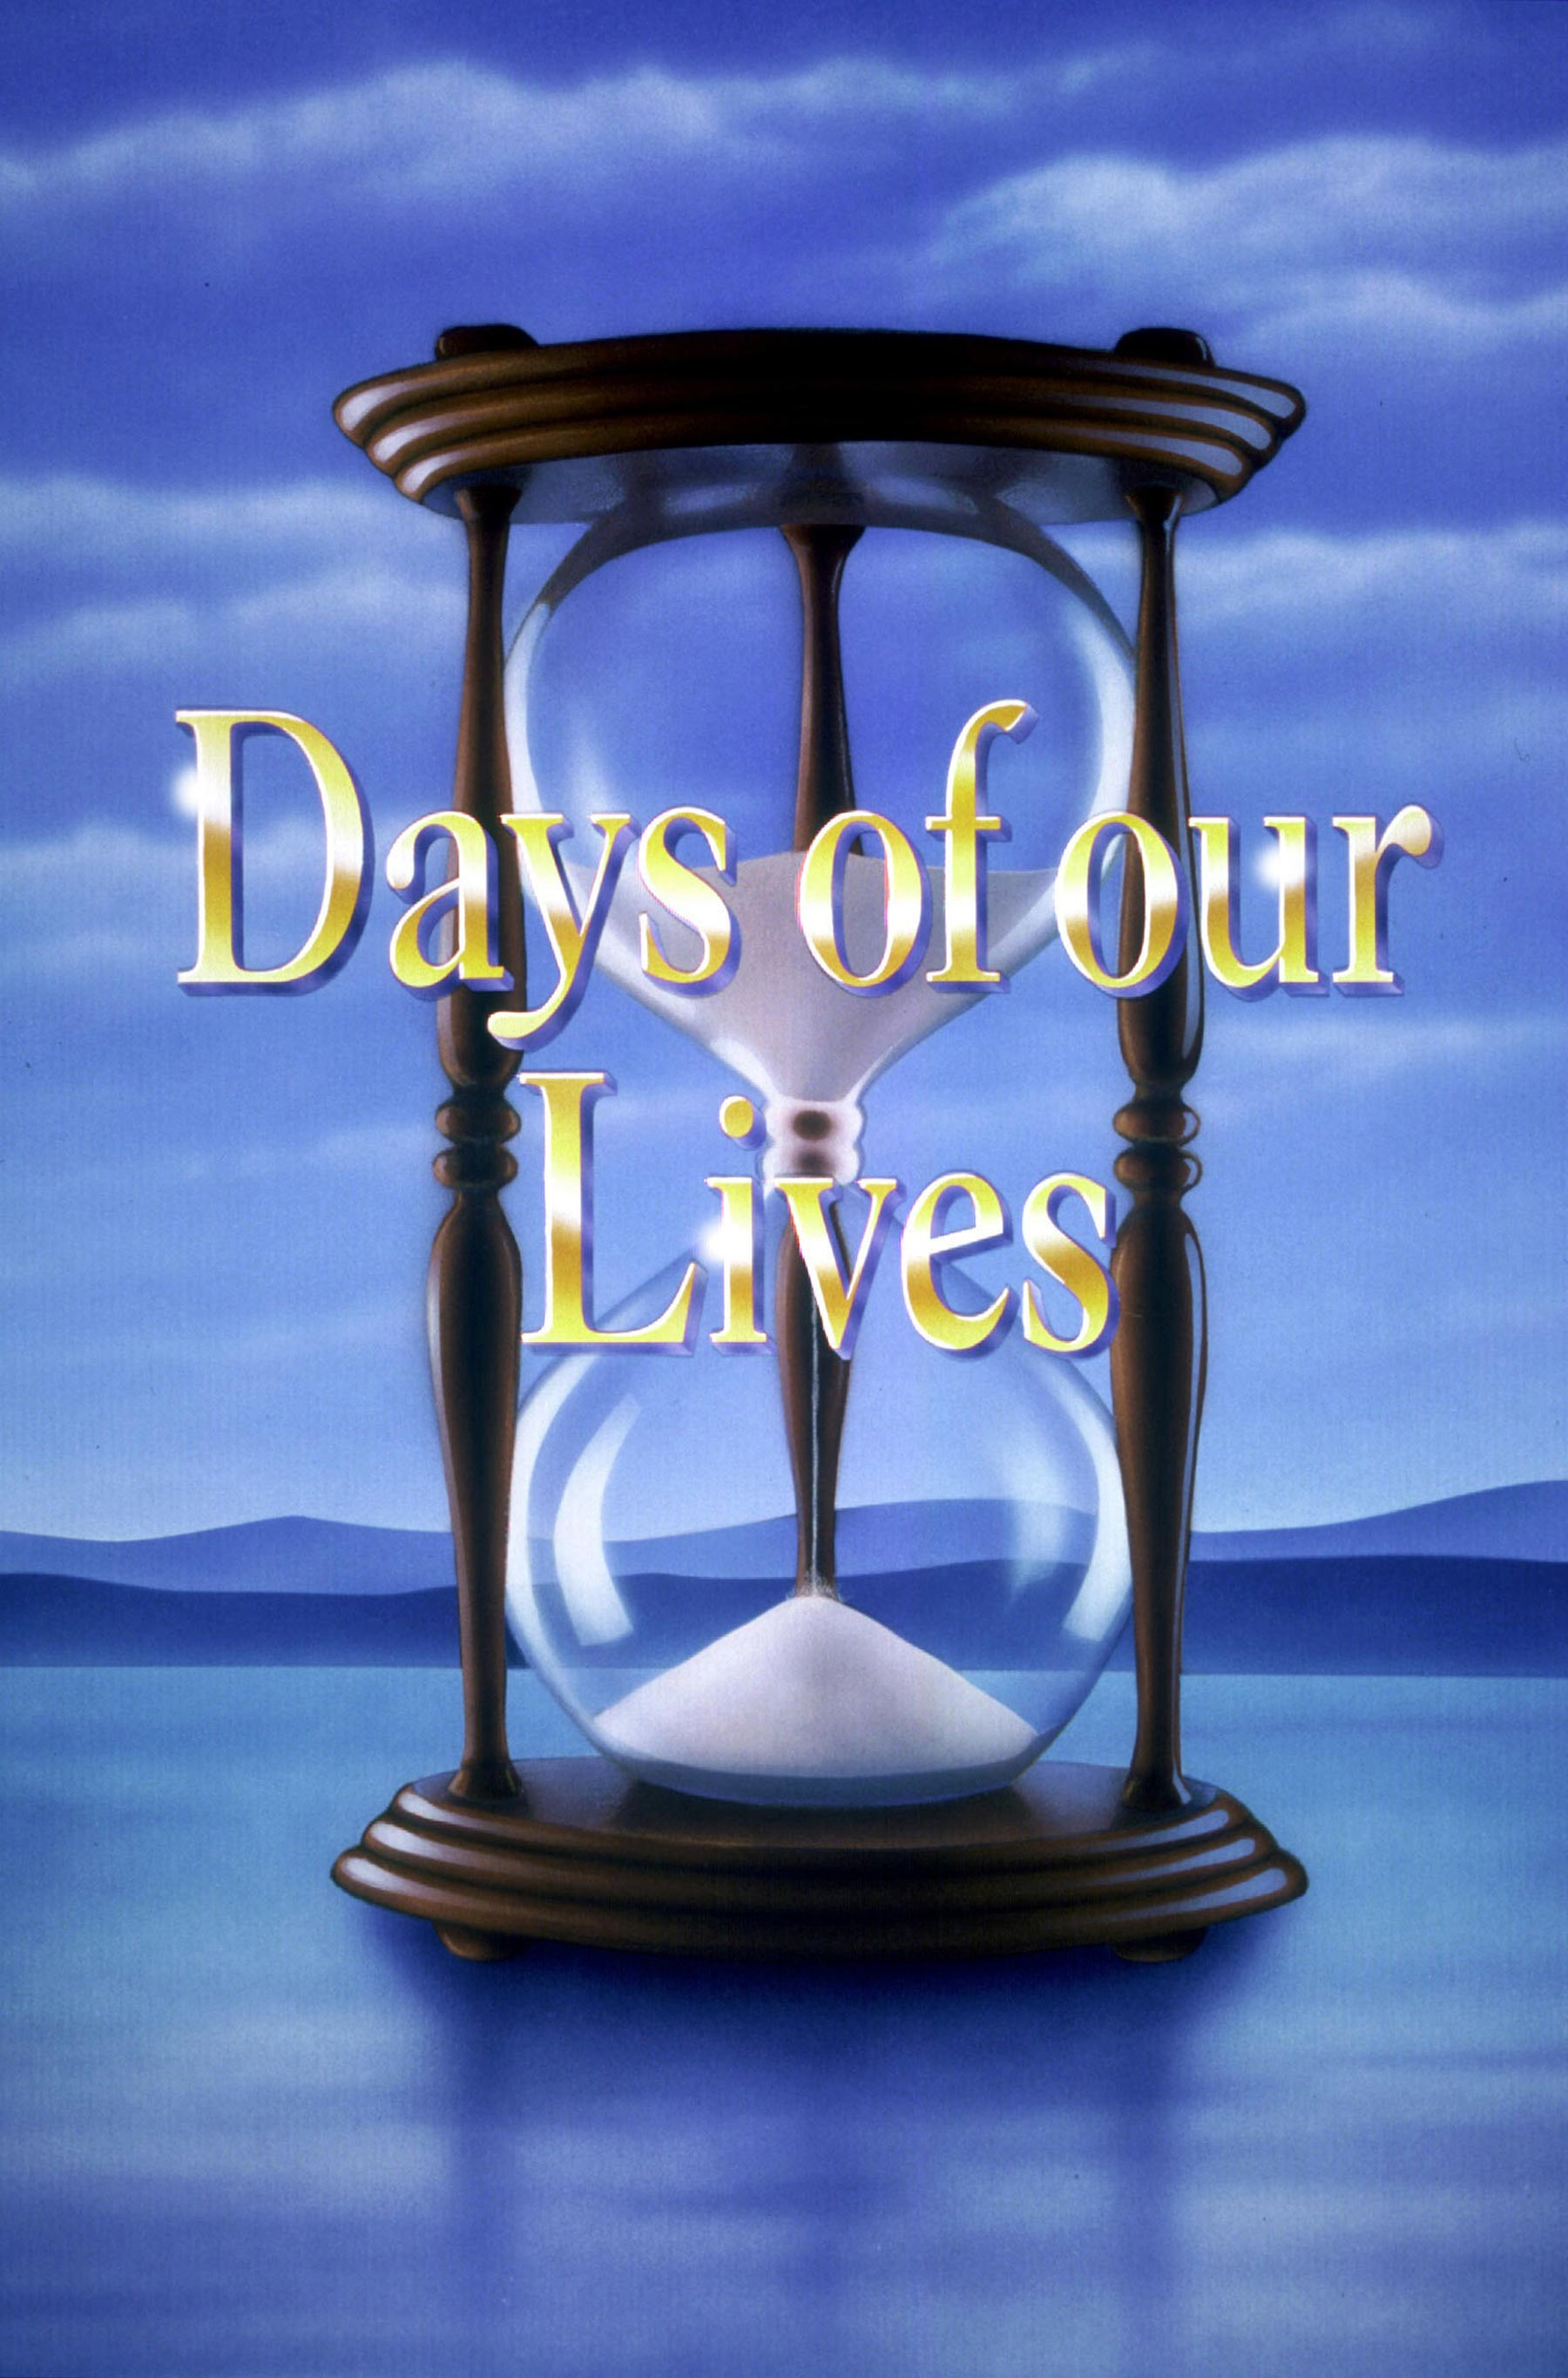 Days of Our Lives renewed for Season 54 on NBC